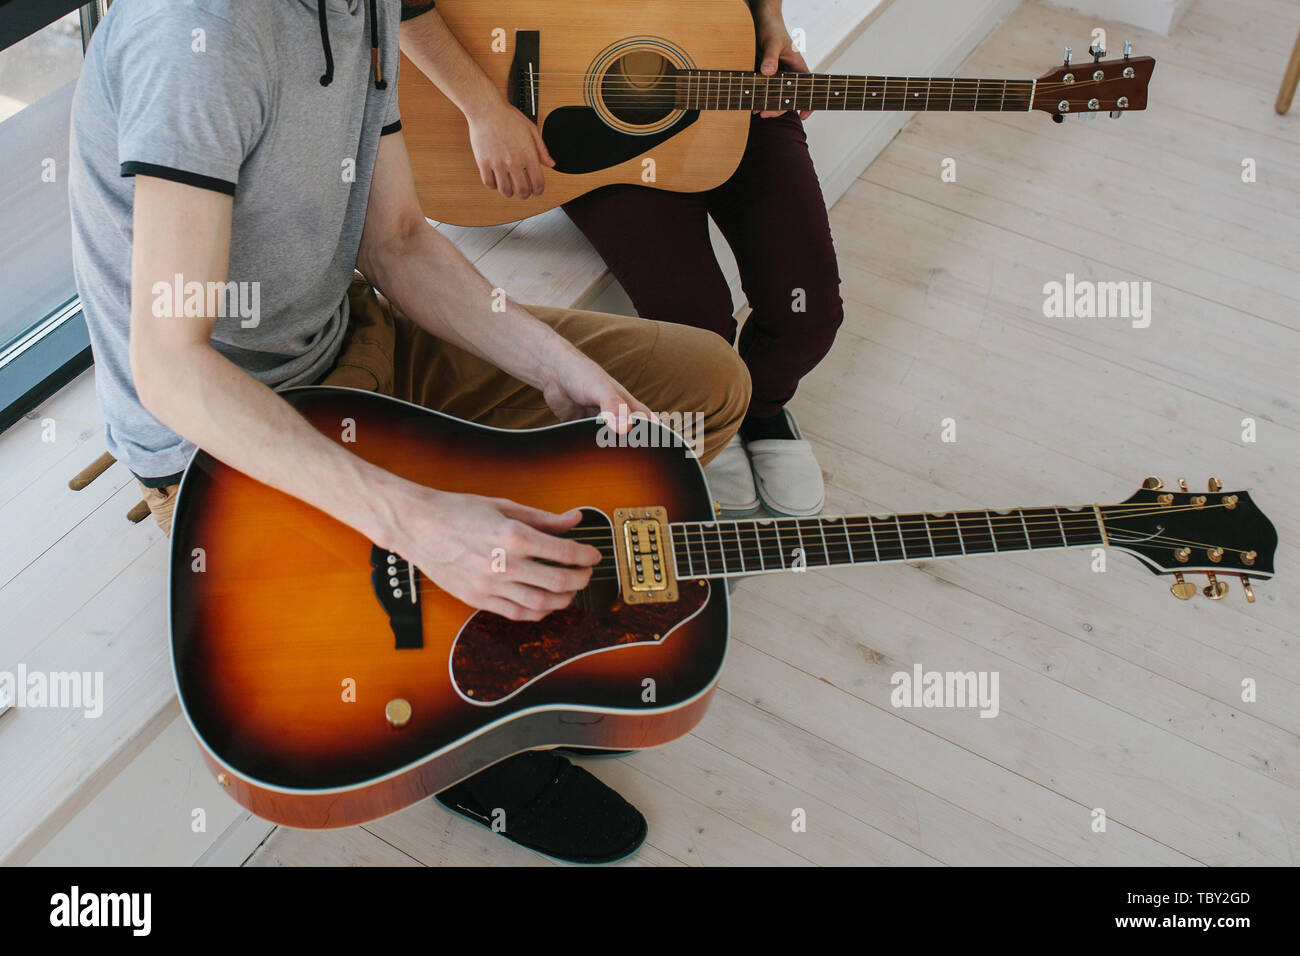 Learning to play the guitar. Extracurricular activities or tutoring or hobbies or creative activities. - Stock Image